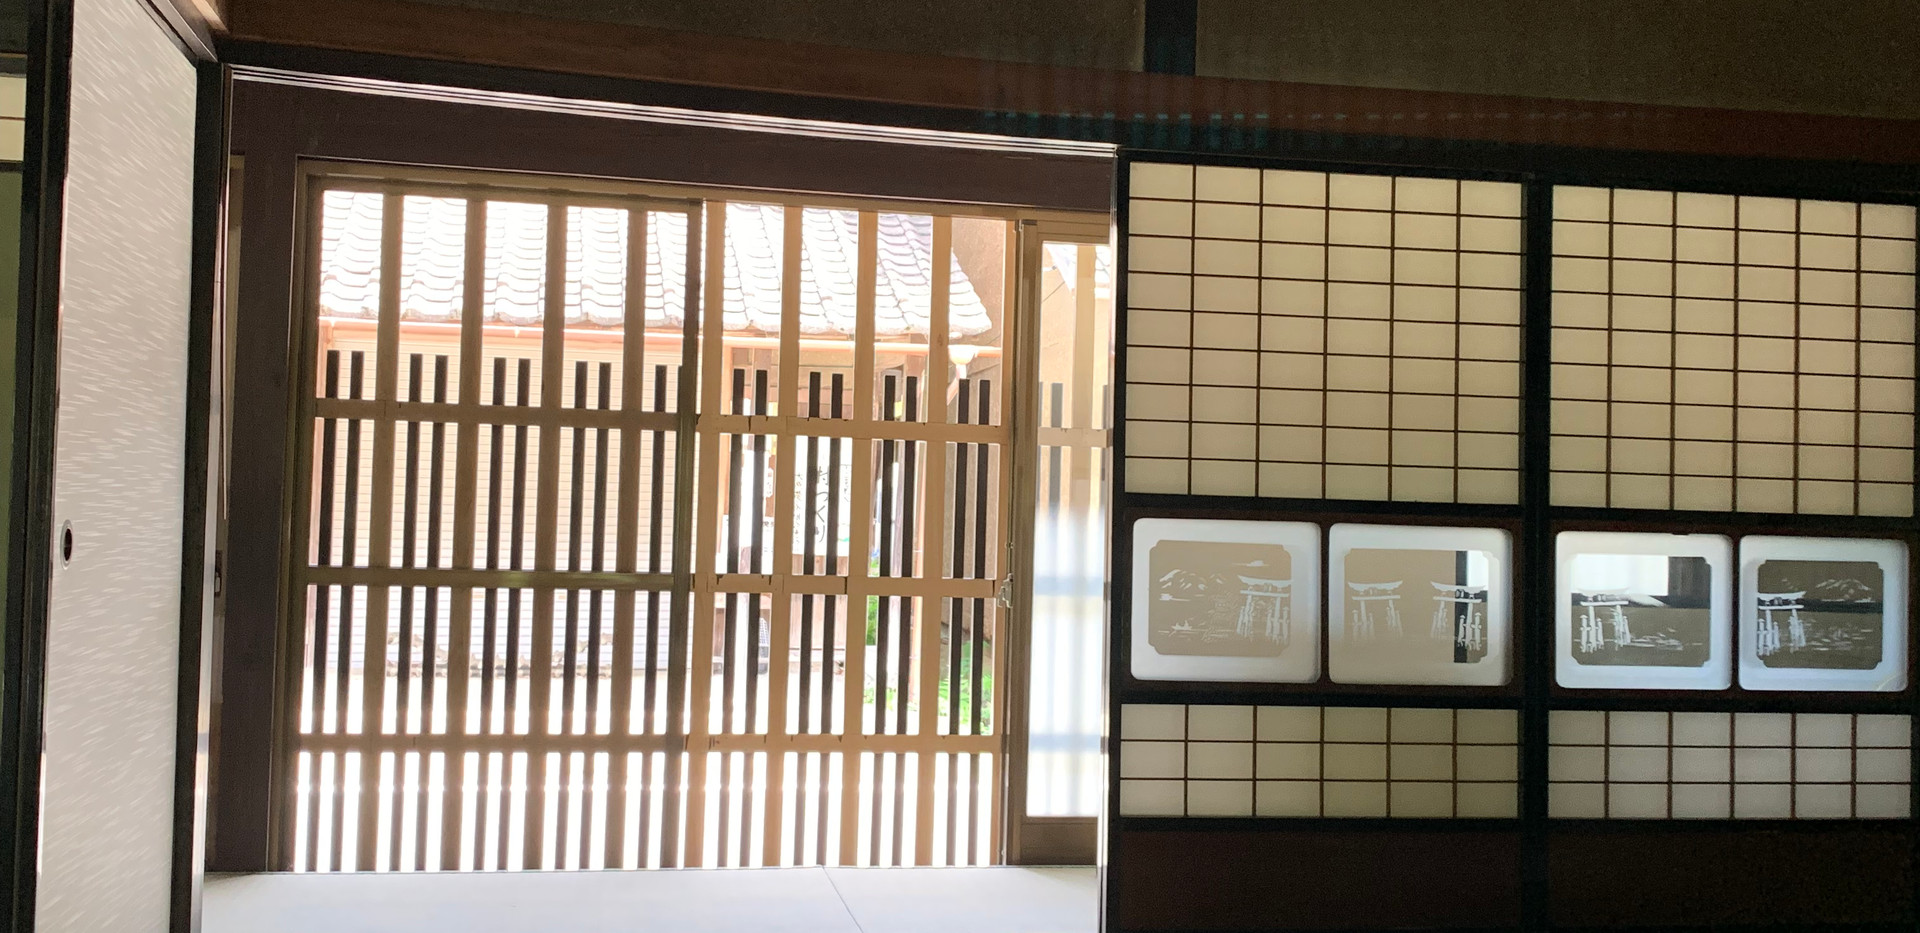 tatami room street side